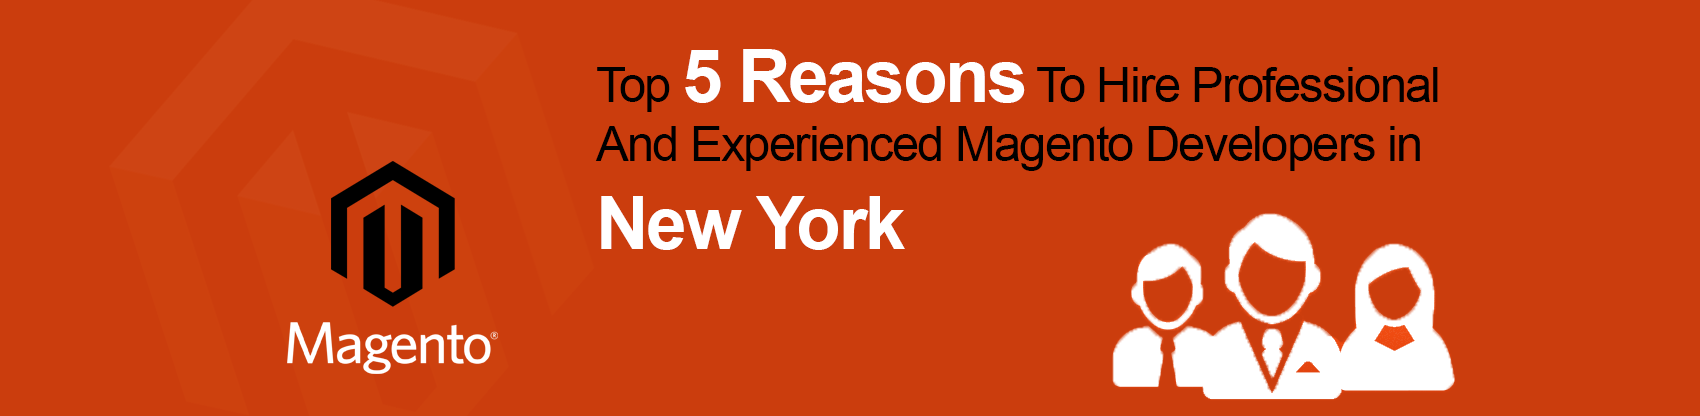 Top Five Reasons To Hire Professional And Experienced Magento Developers in New York